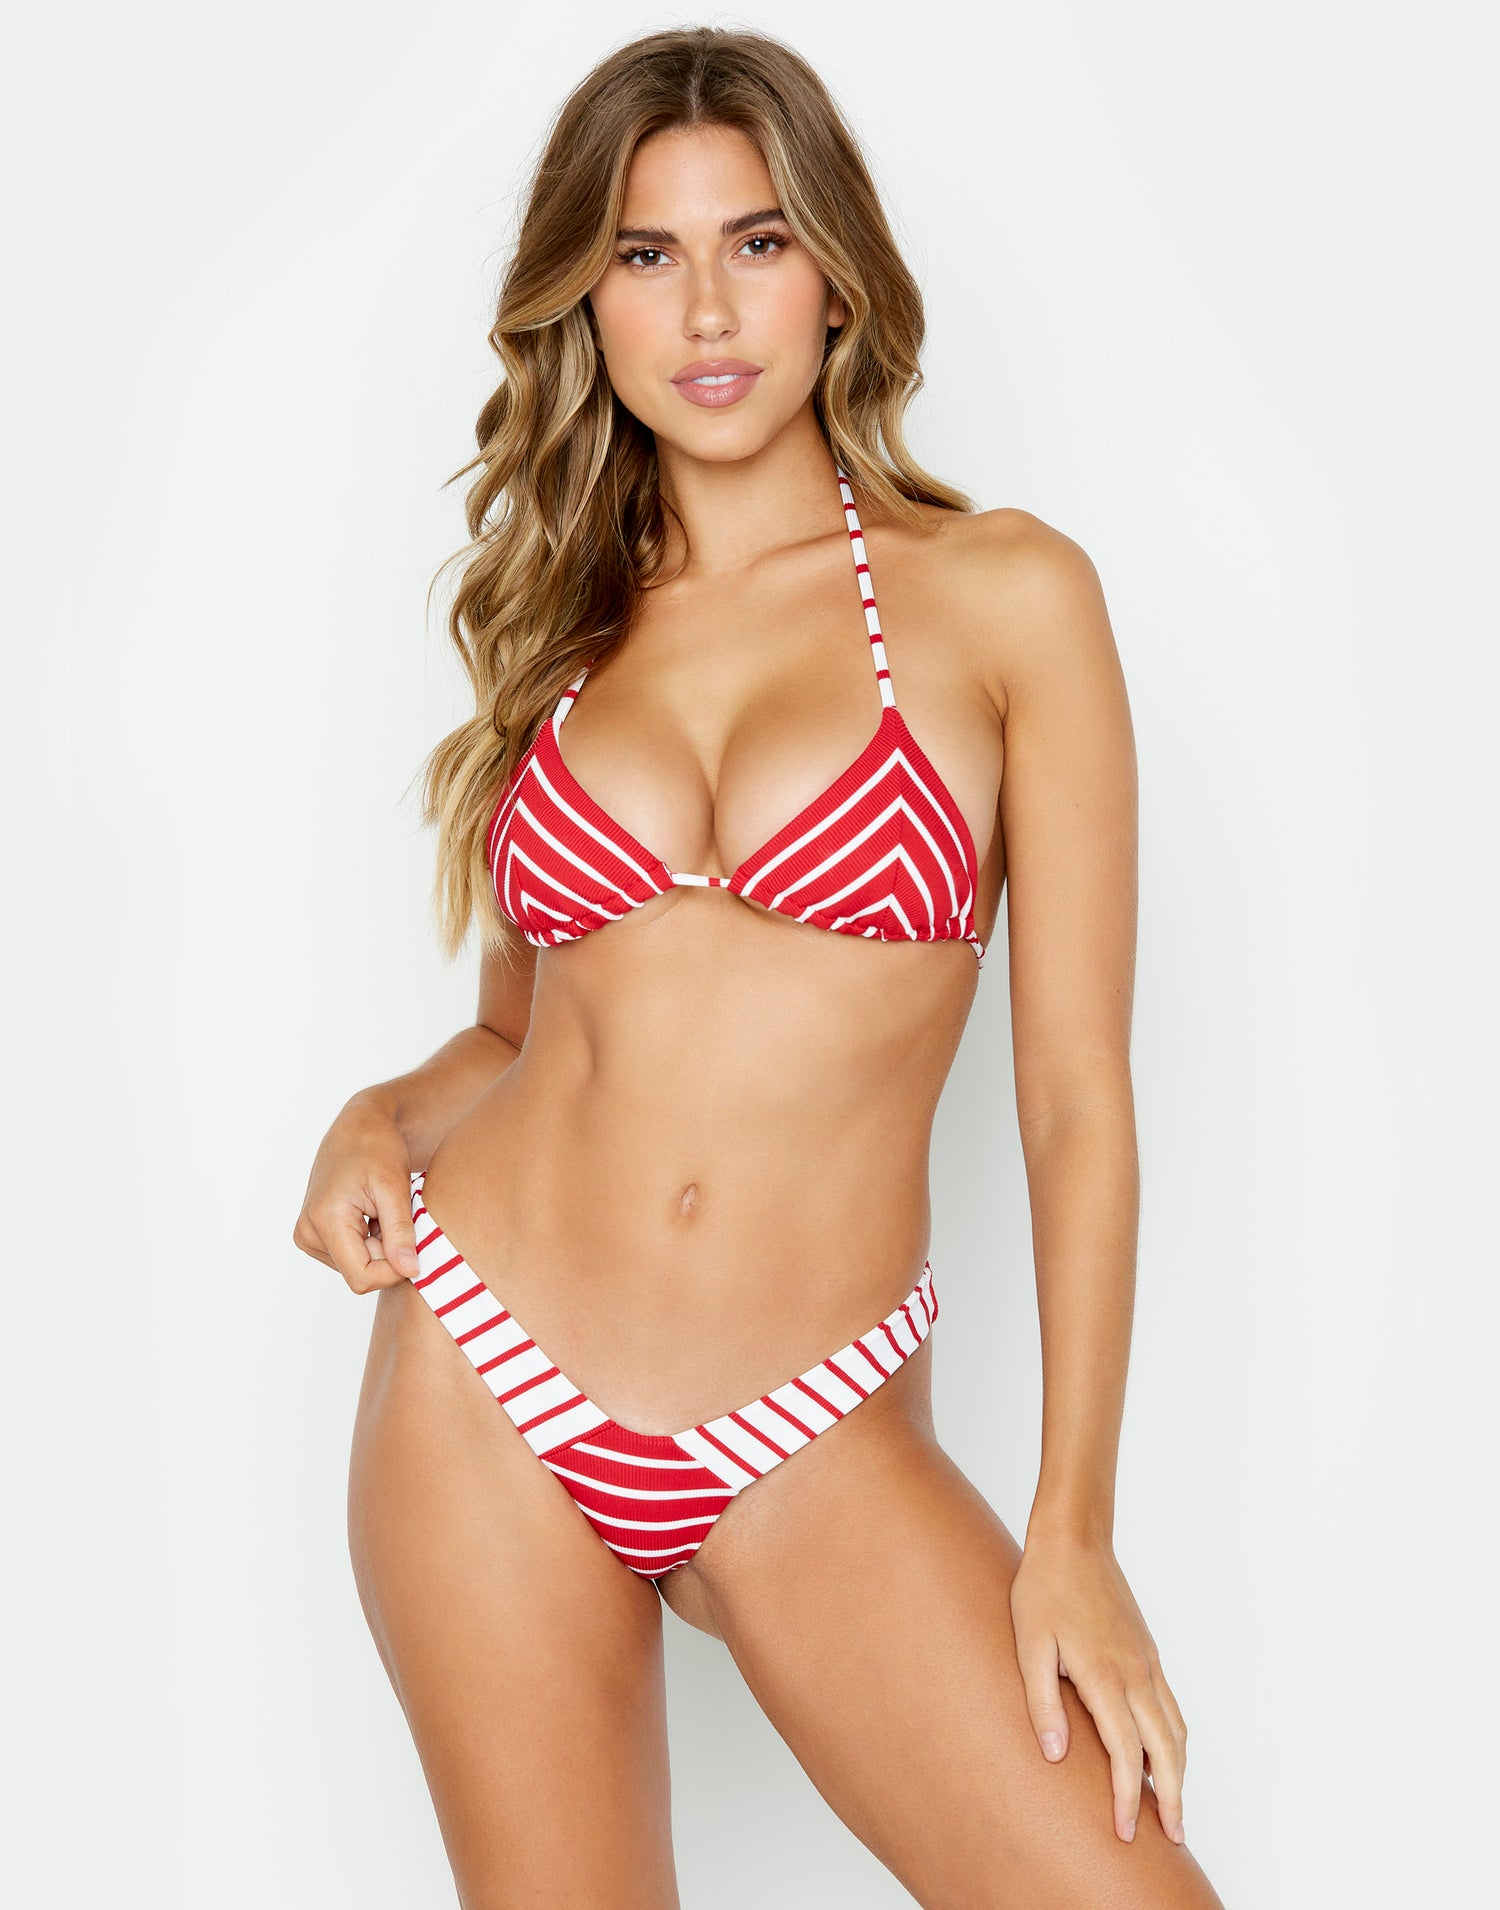 Chrissy Micro Tango Bikini Bottom in Red Stripes - Front View